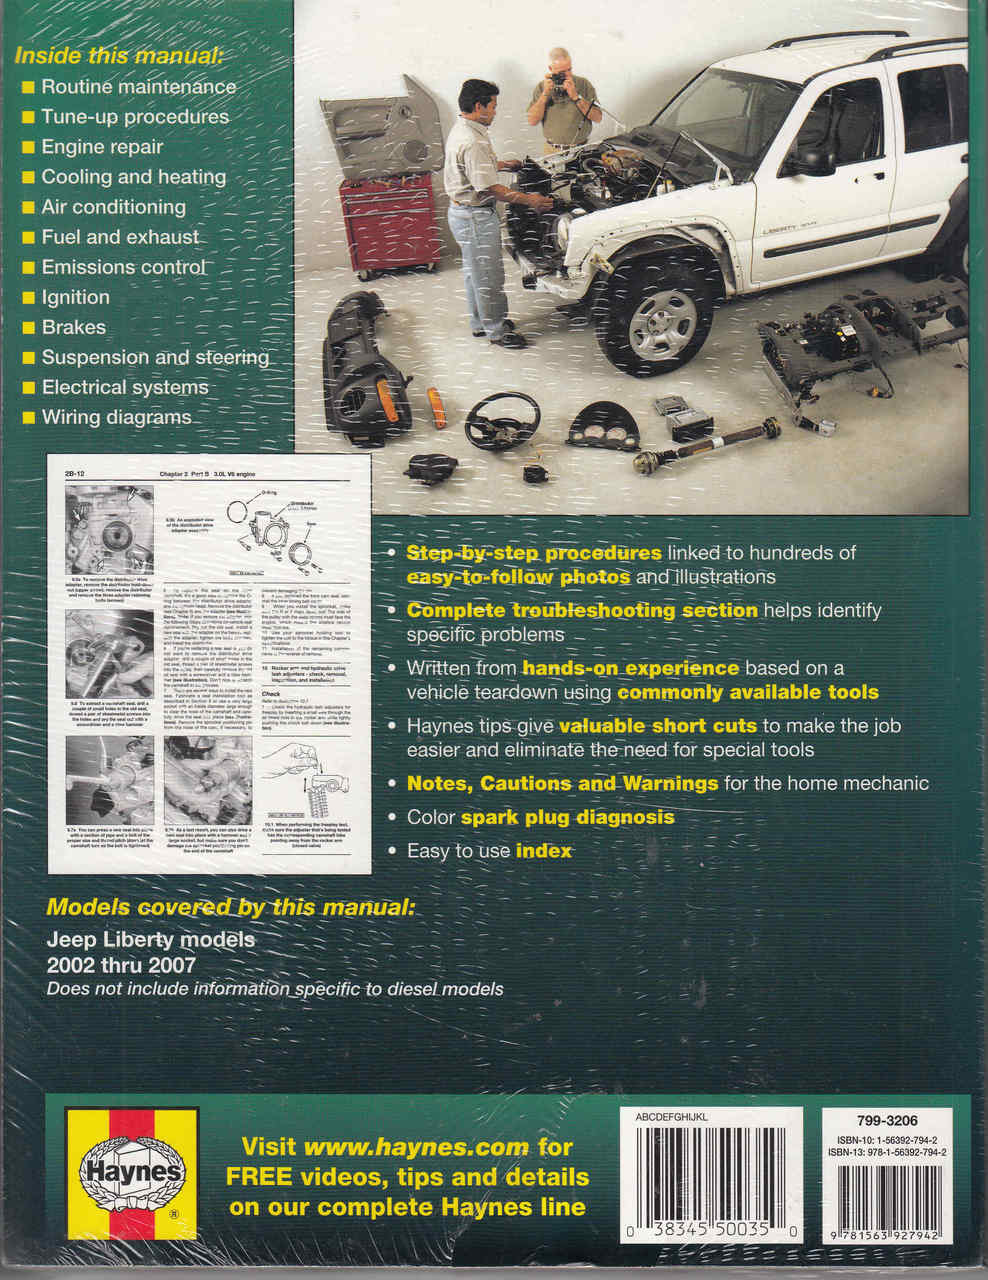 Marvelous Jeep Liberty 2002 2007 Gasoline Models Workshop Manual Wiring Cloud Oideiuggs Outletorg